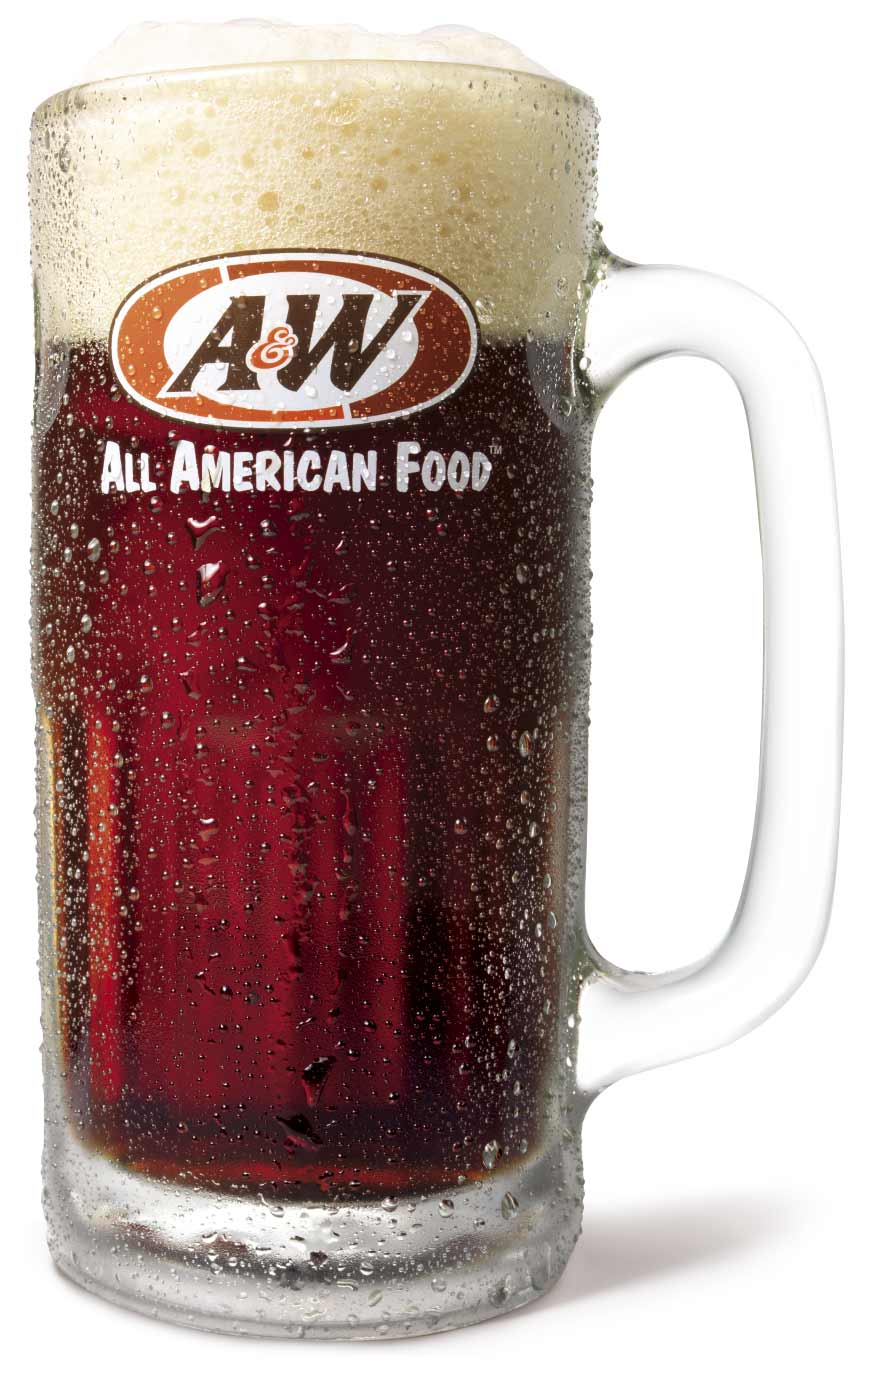 A&W All-American Food, Wautoma WI